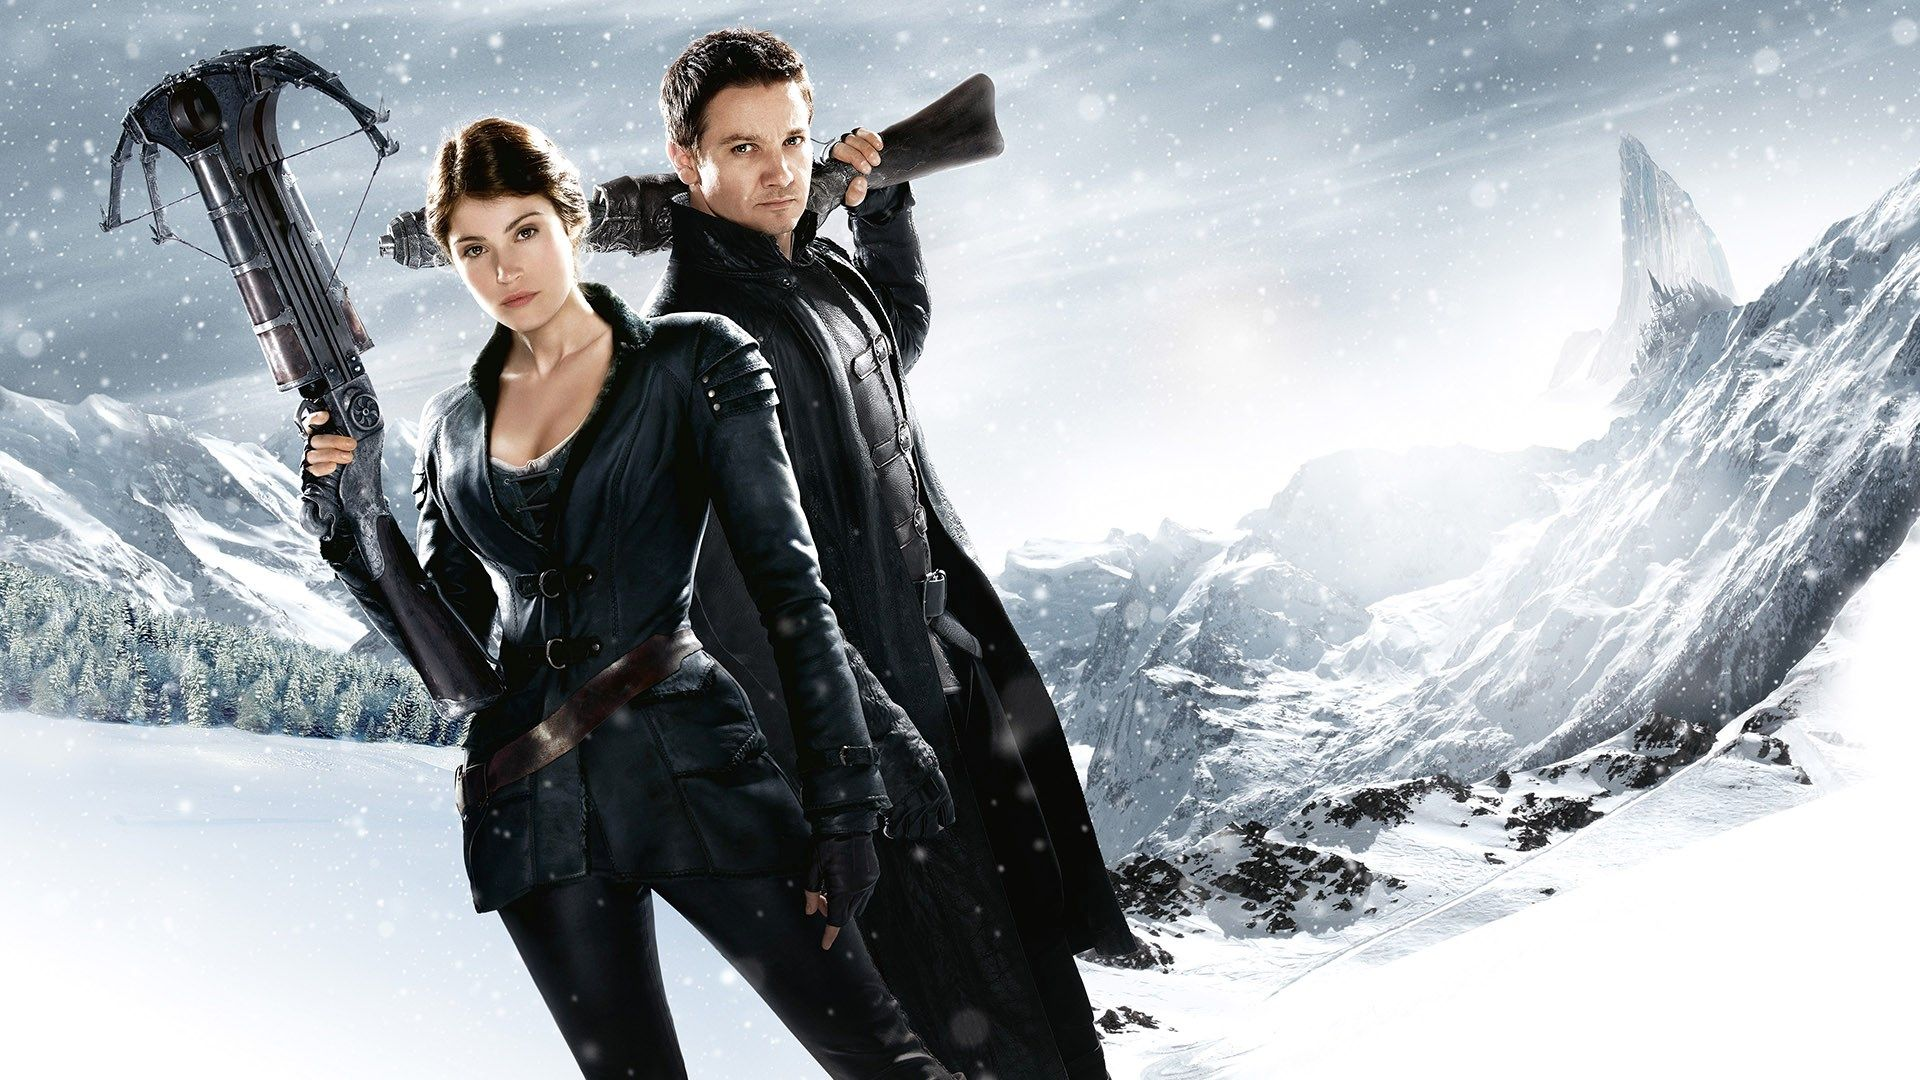 HD Widescreen hansel and gretel witch hunters image - hansel and gretel witch hunters category